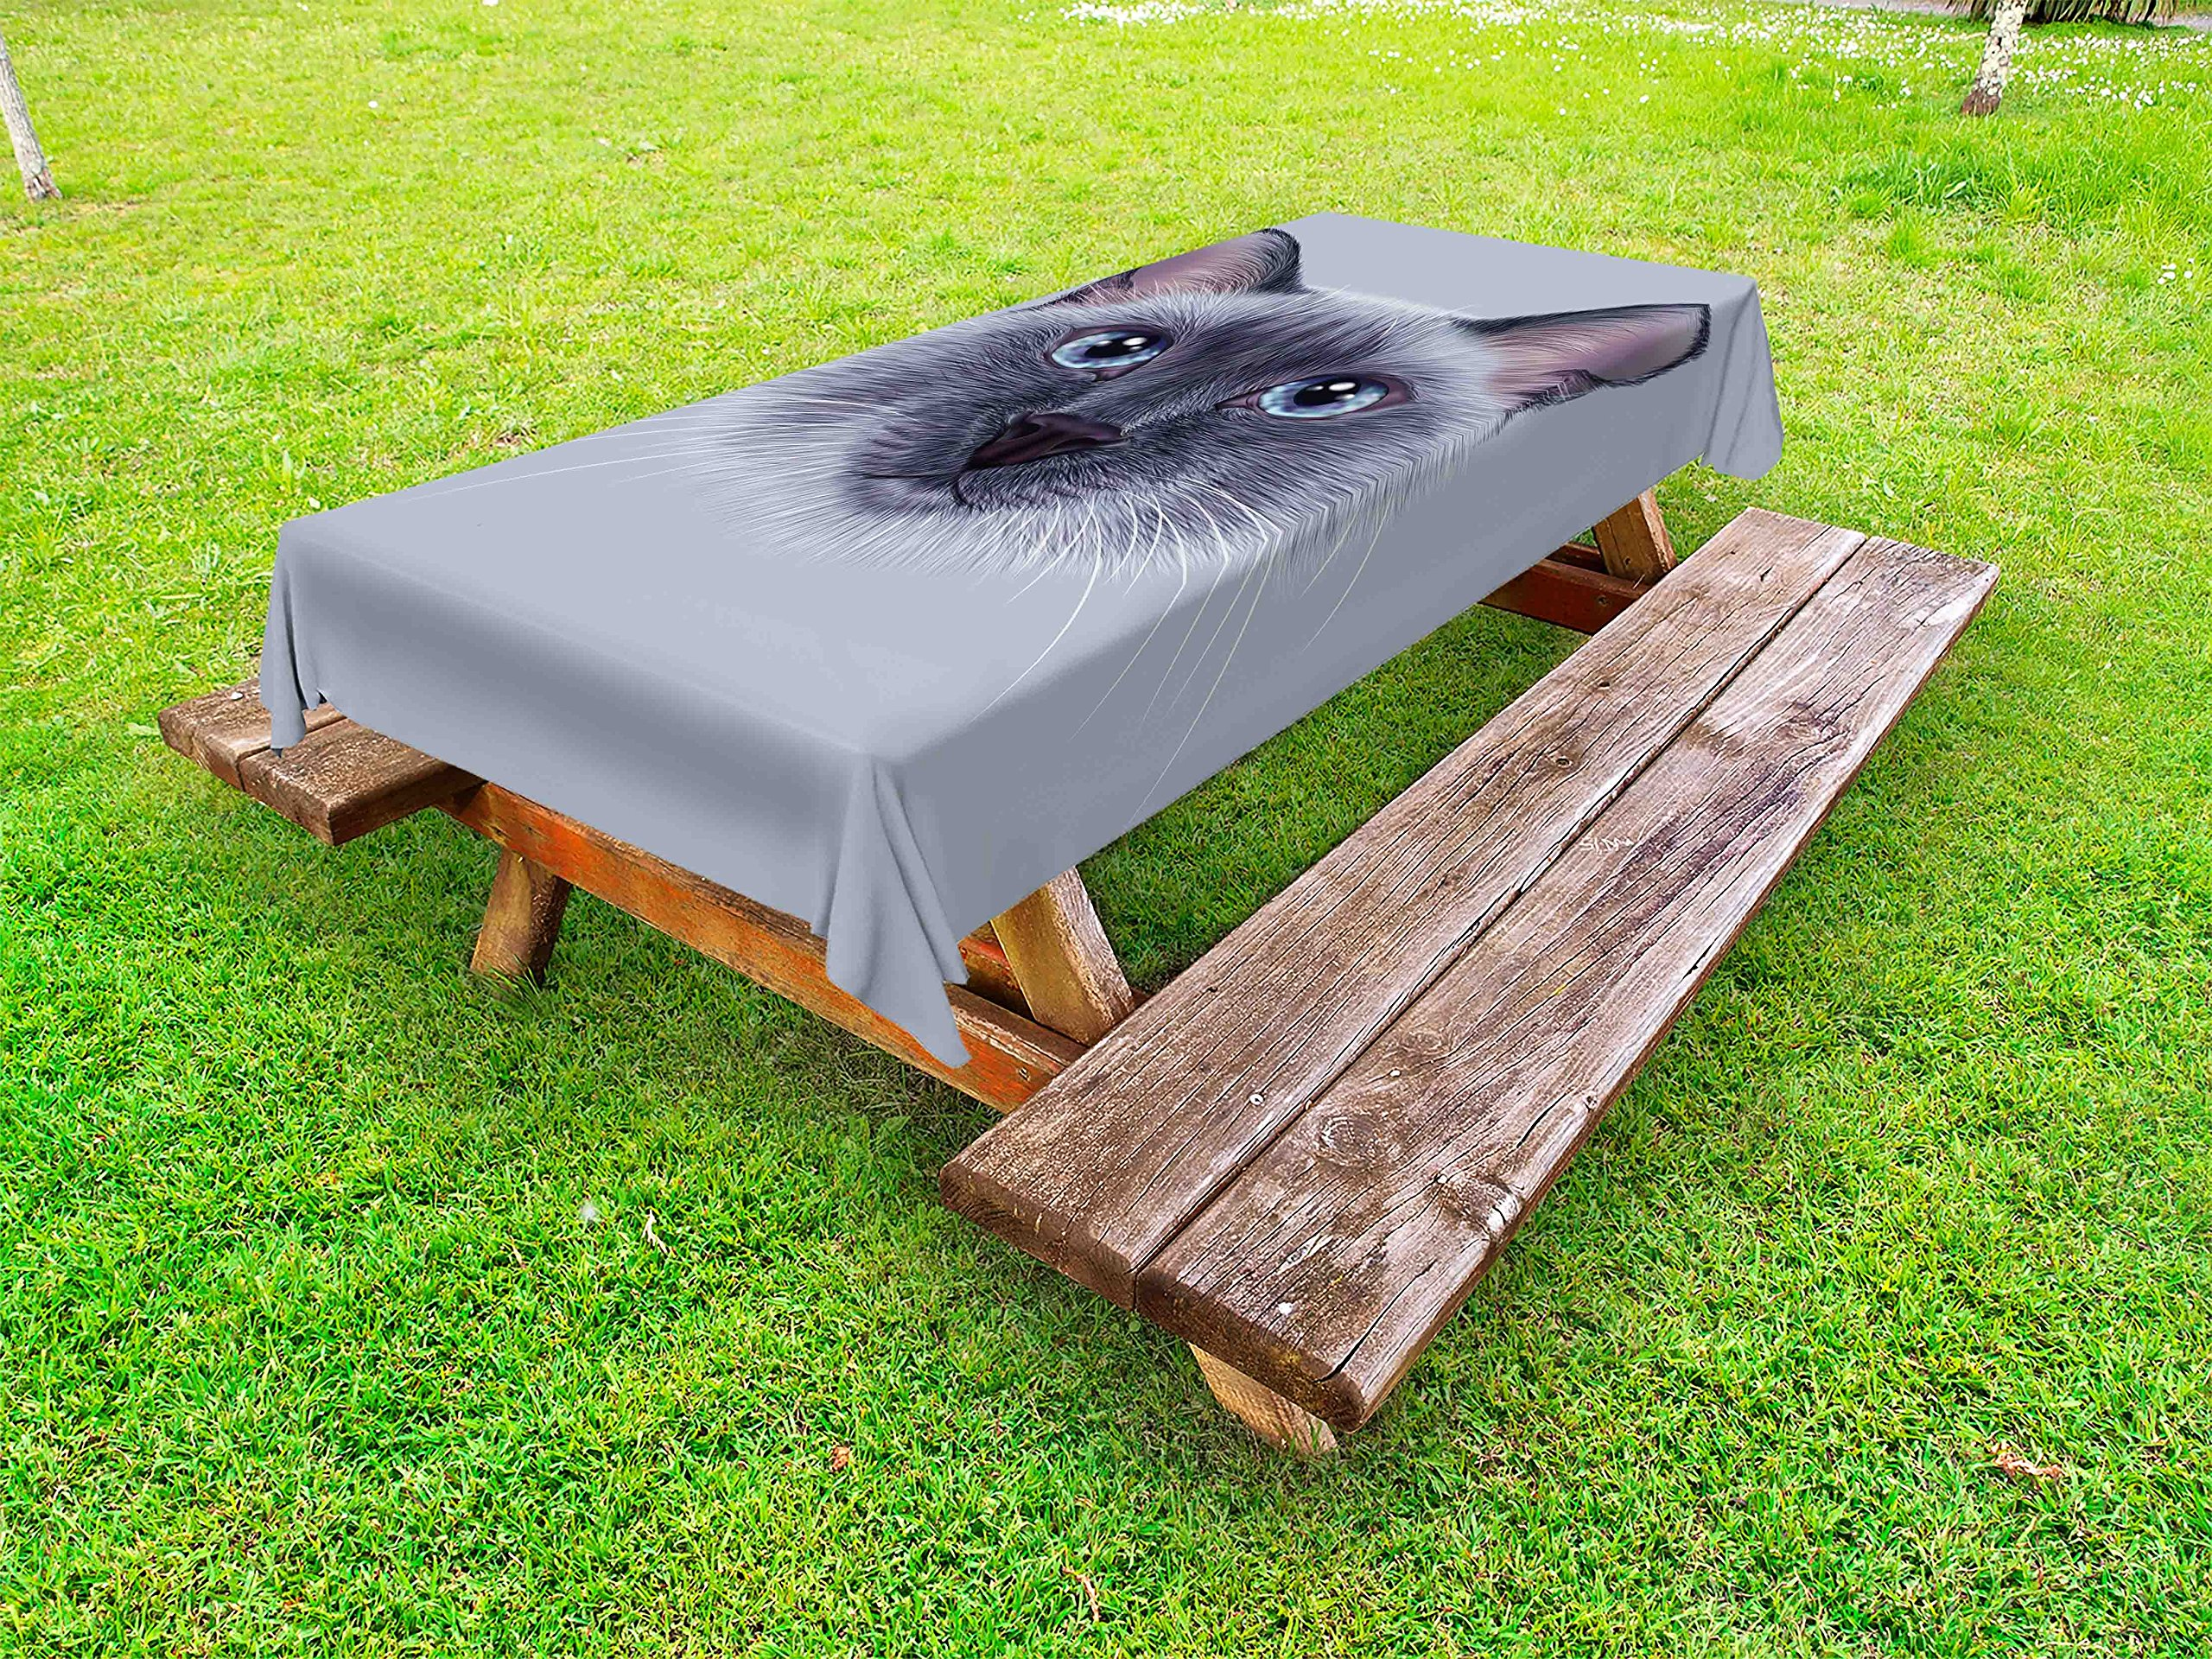 Ambesonne Animal Outdoor Tablecloth, Portrait Image of Thai Siamese Cat with Retro Style Lettering Artwork, Decorative Washable Picnic Table Cloth, 58 X 120 Inches, White Sky Blue and Grey by Ambesonne